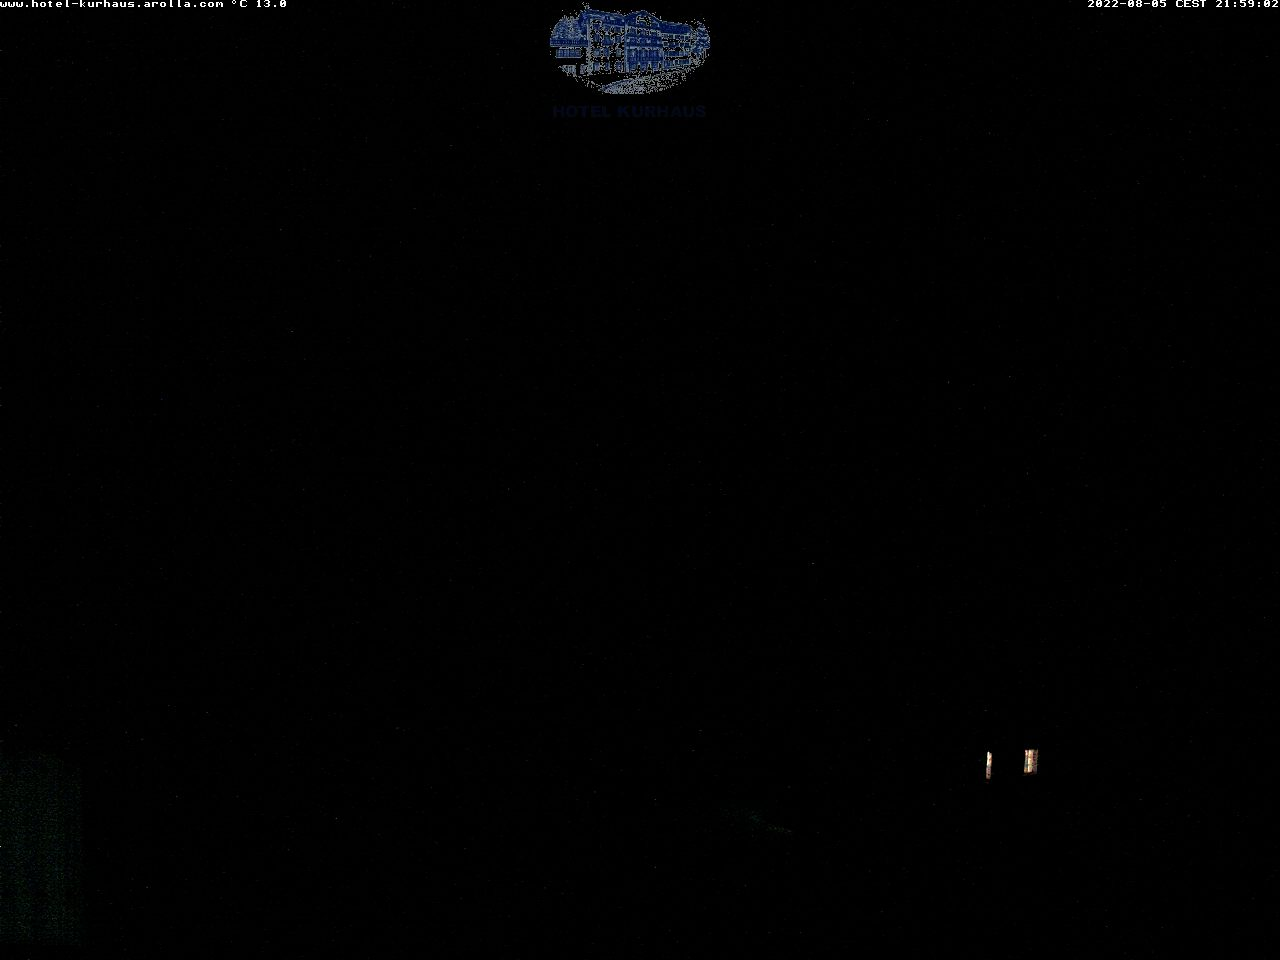 WEBCAM AROLLA, vue sur le Mont Collon